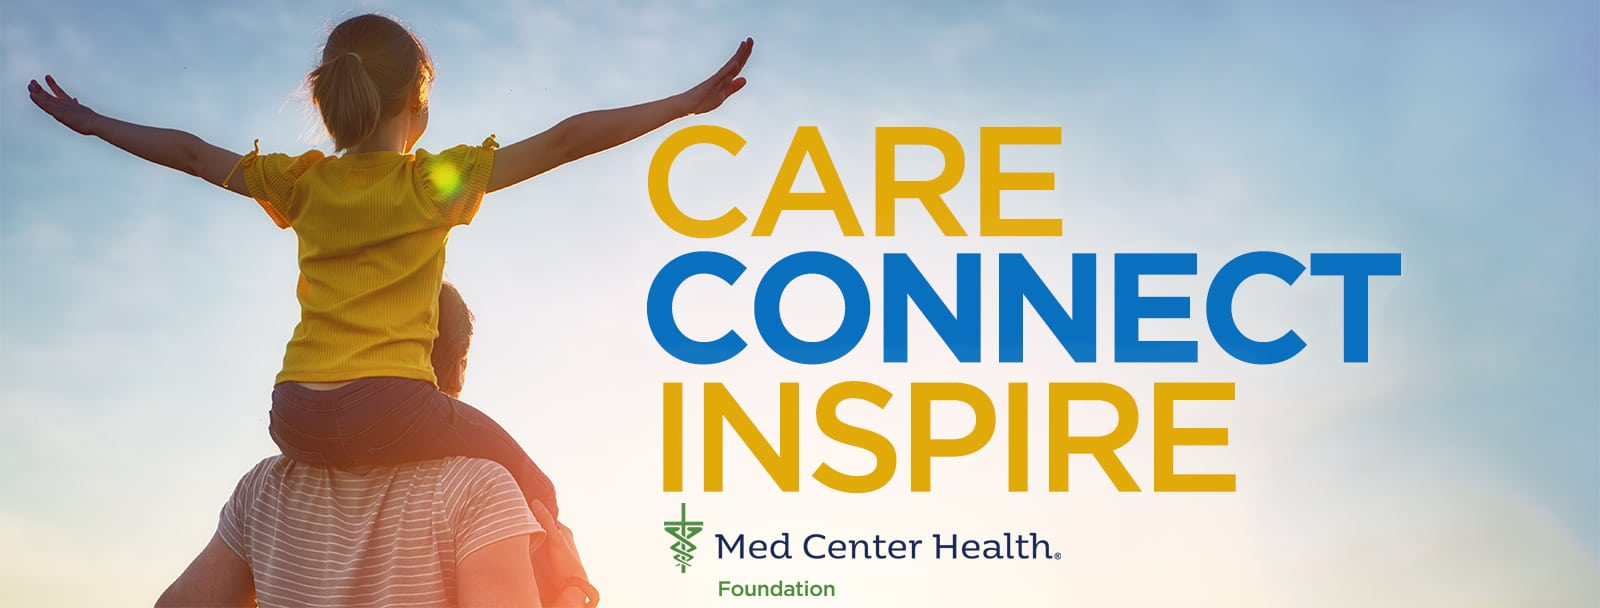 MCH Foundation – Care, Connect, Inspire